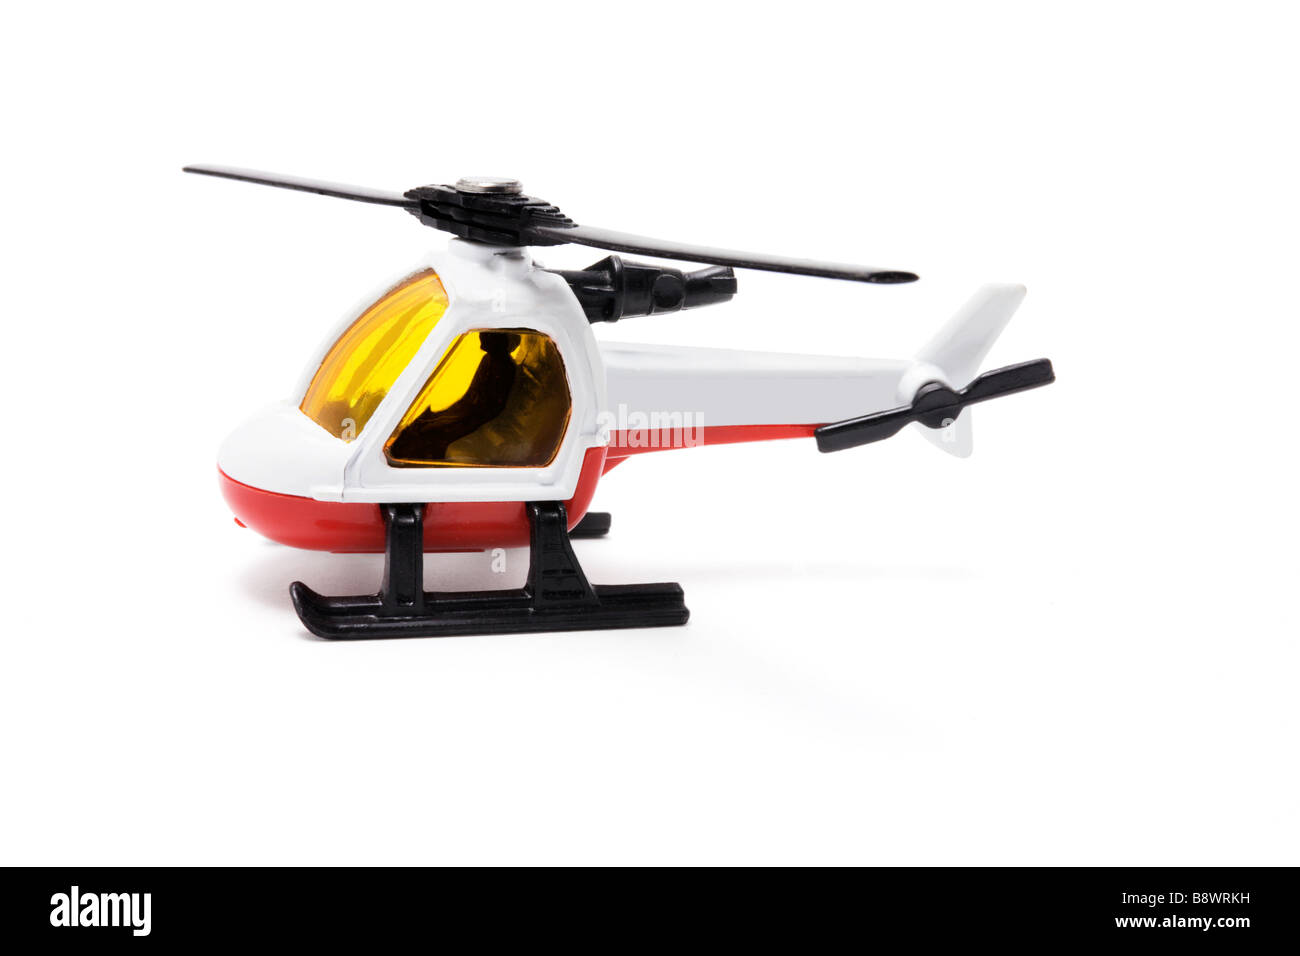 Miniature Helicopter - Stock Image